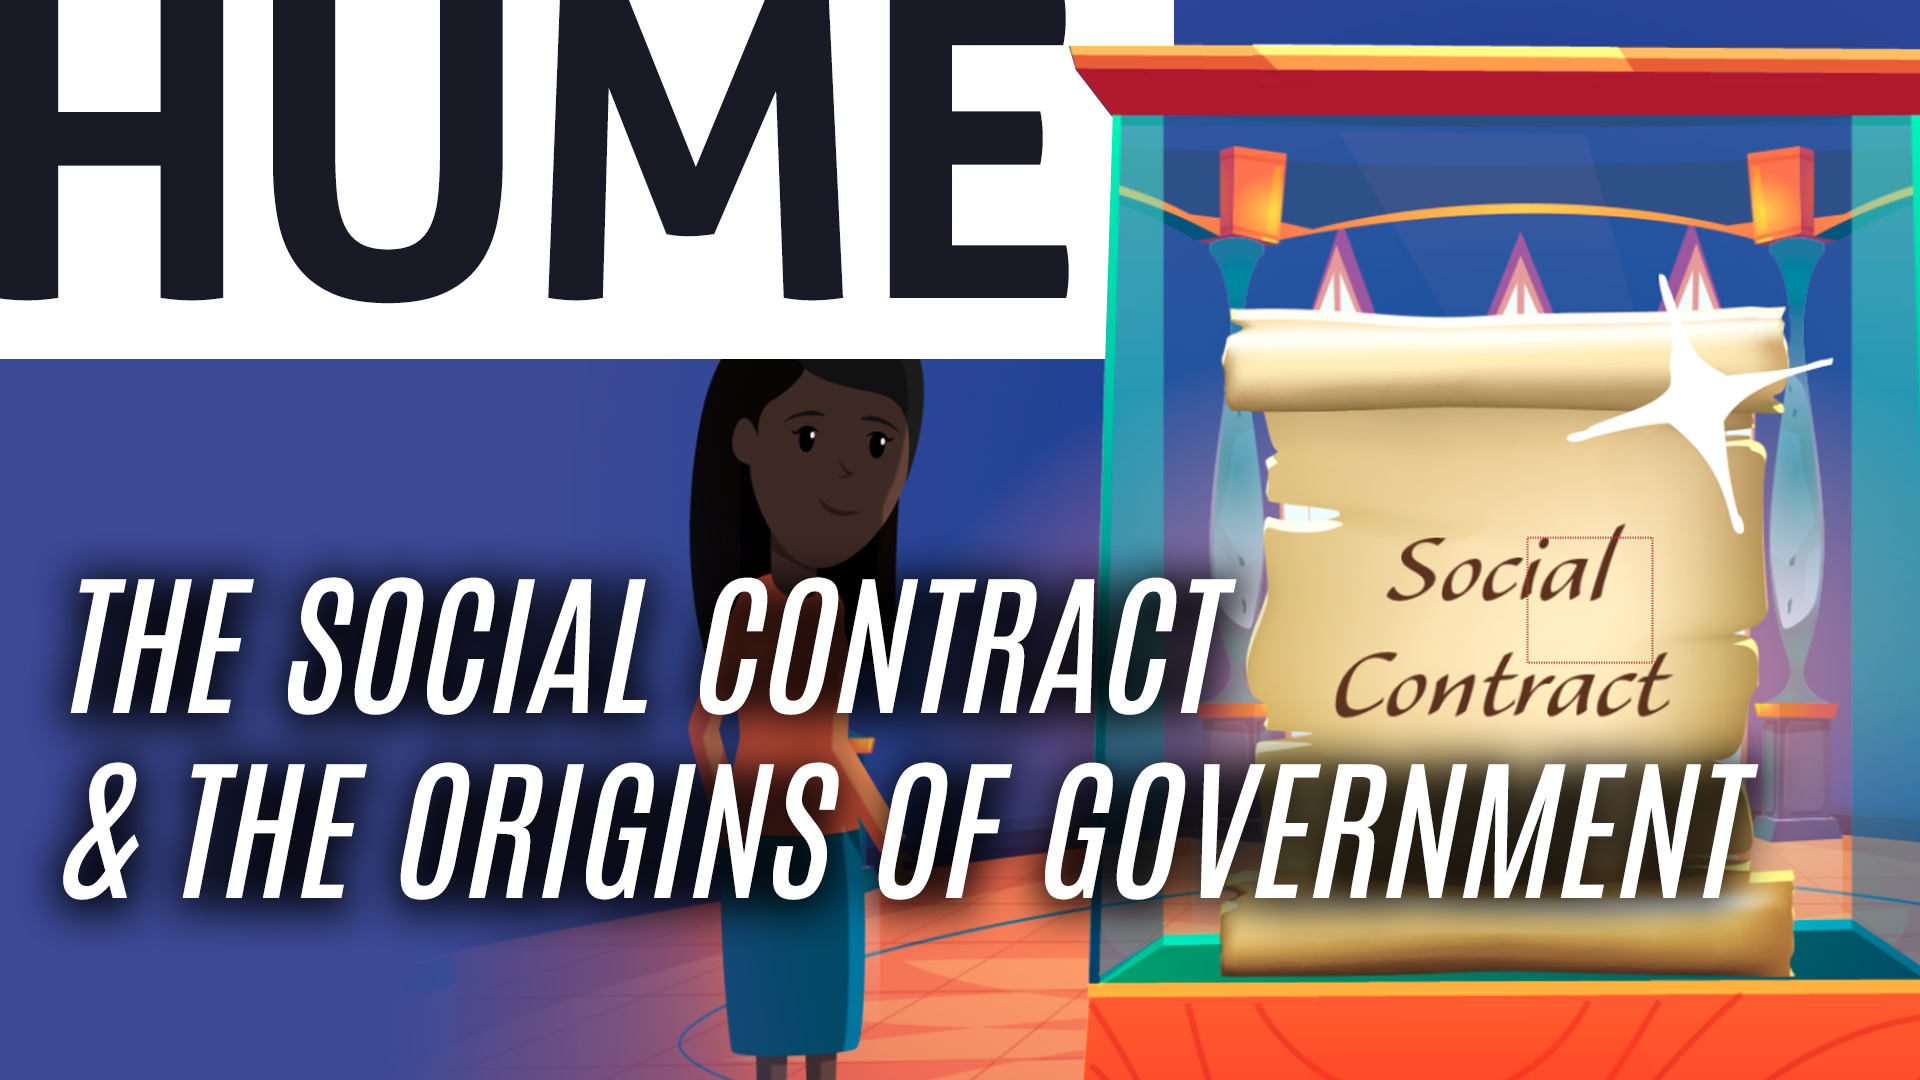 The Social Contract & The Origins of Government